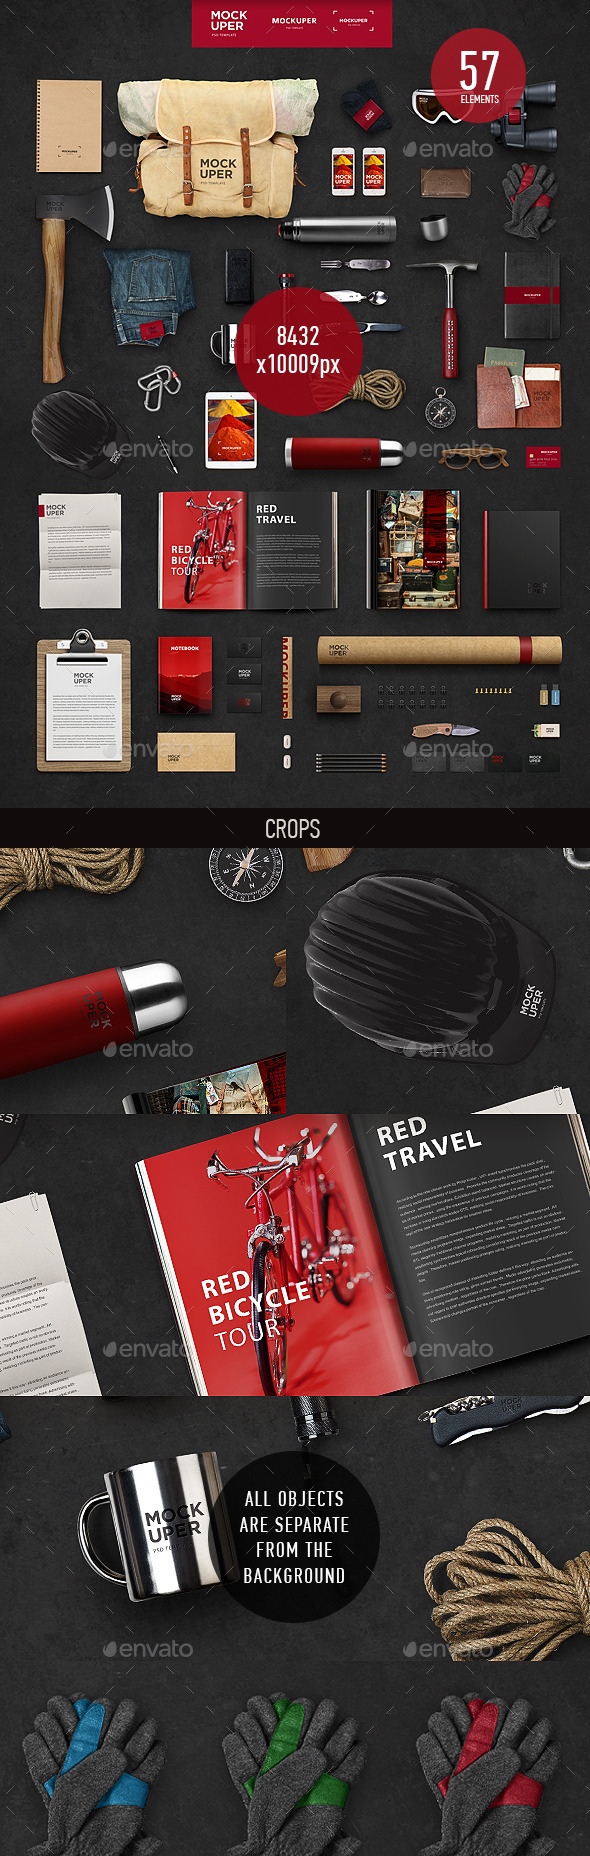 GraphicRiver Travel Brutal Branding Mock-Up PSD 9517348